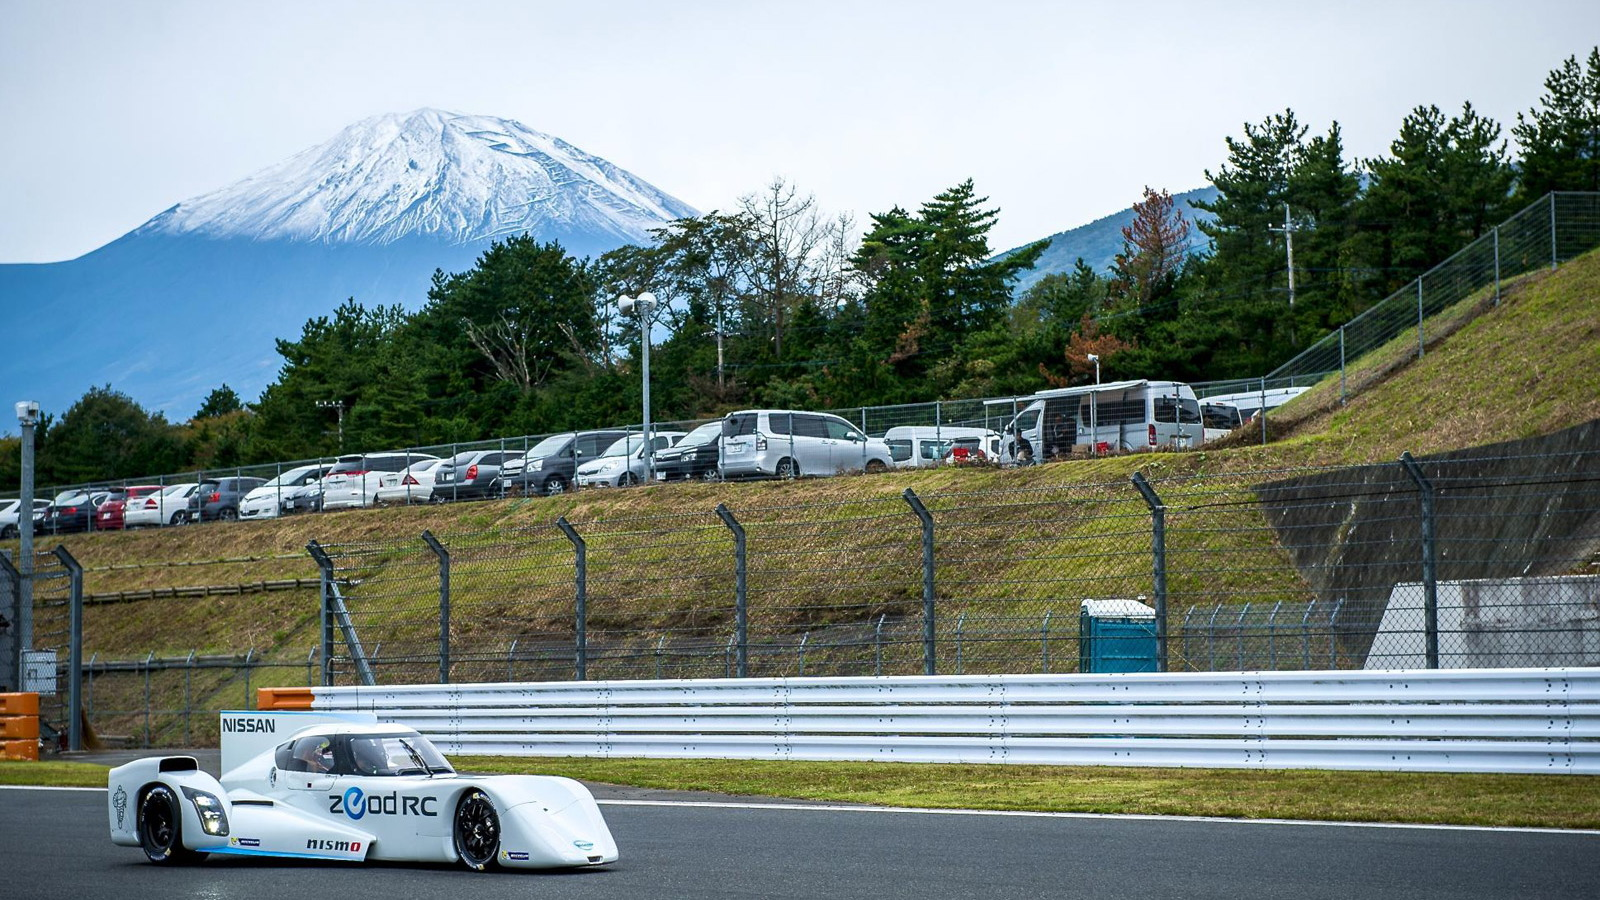 2014 Nissan ZEOD RC Le Mans prototype makes track debut at Fuji Speedway